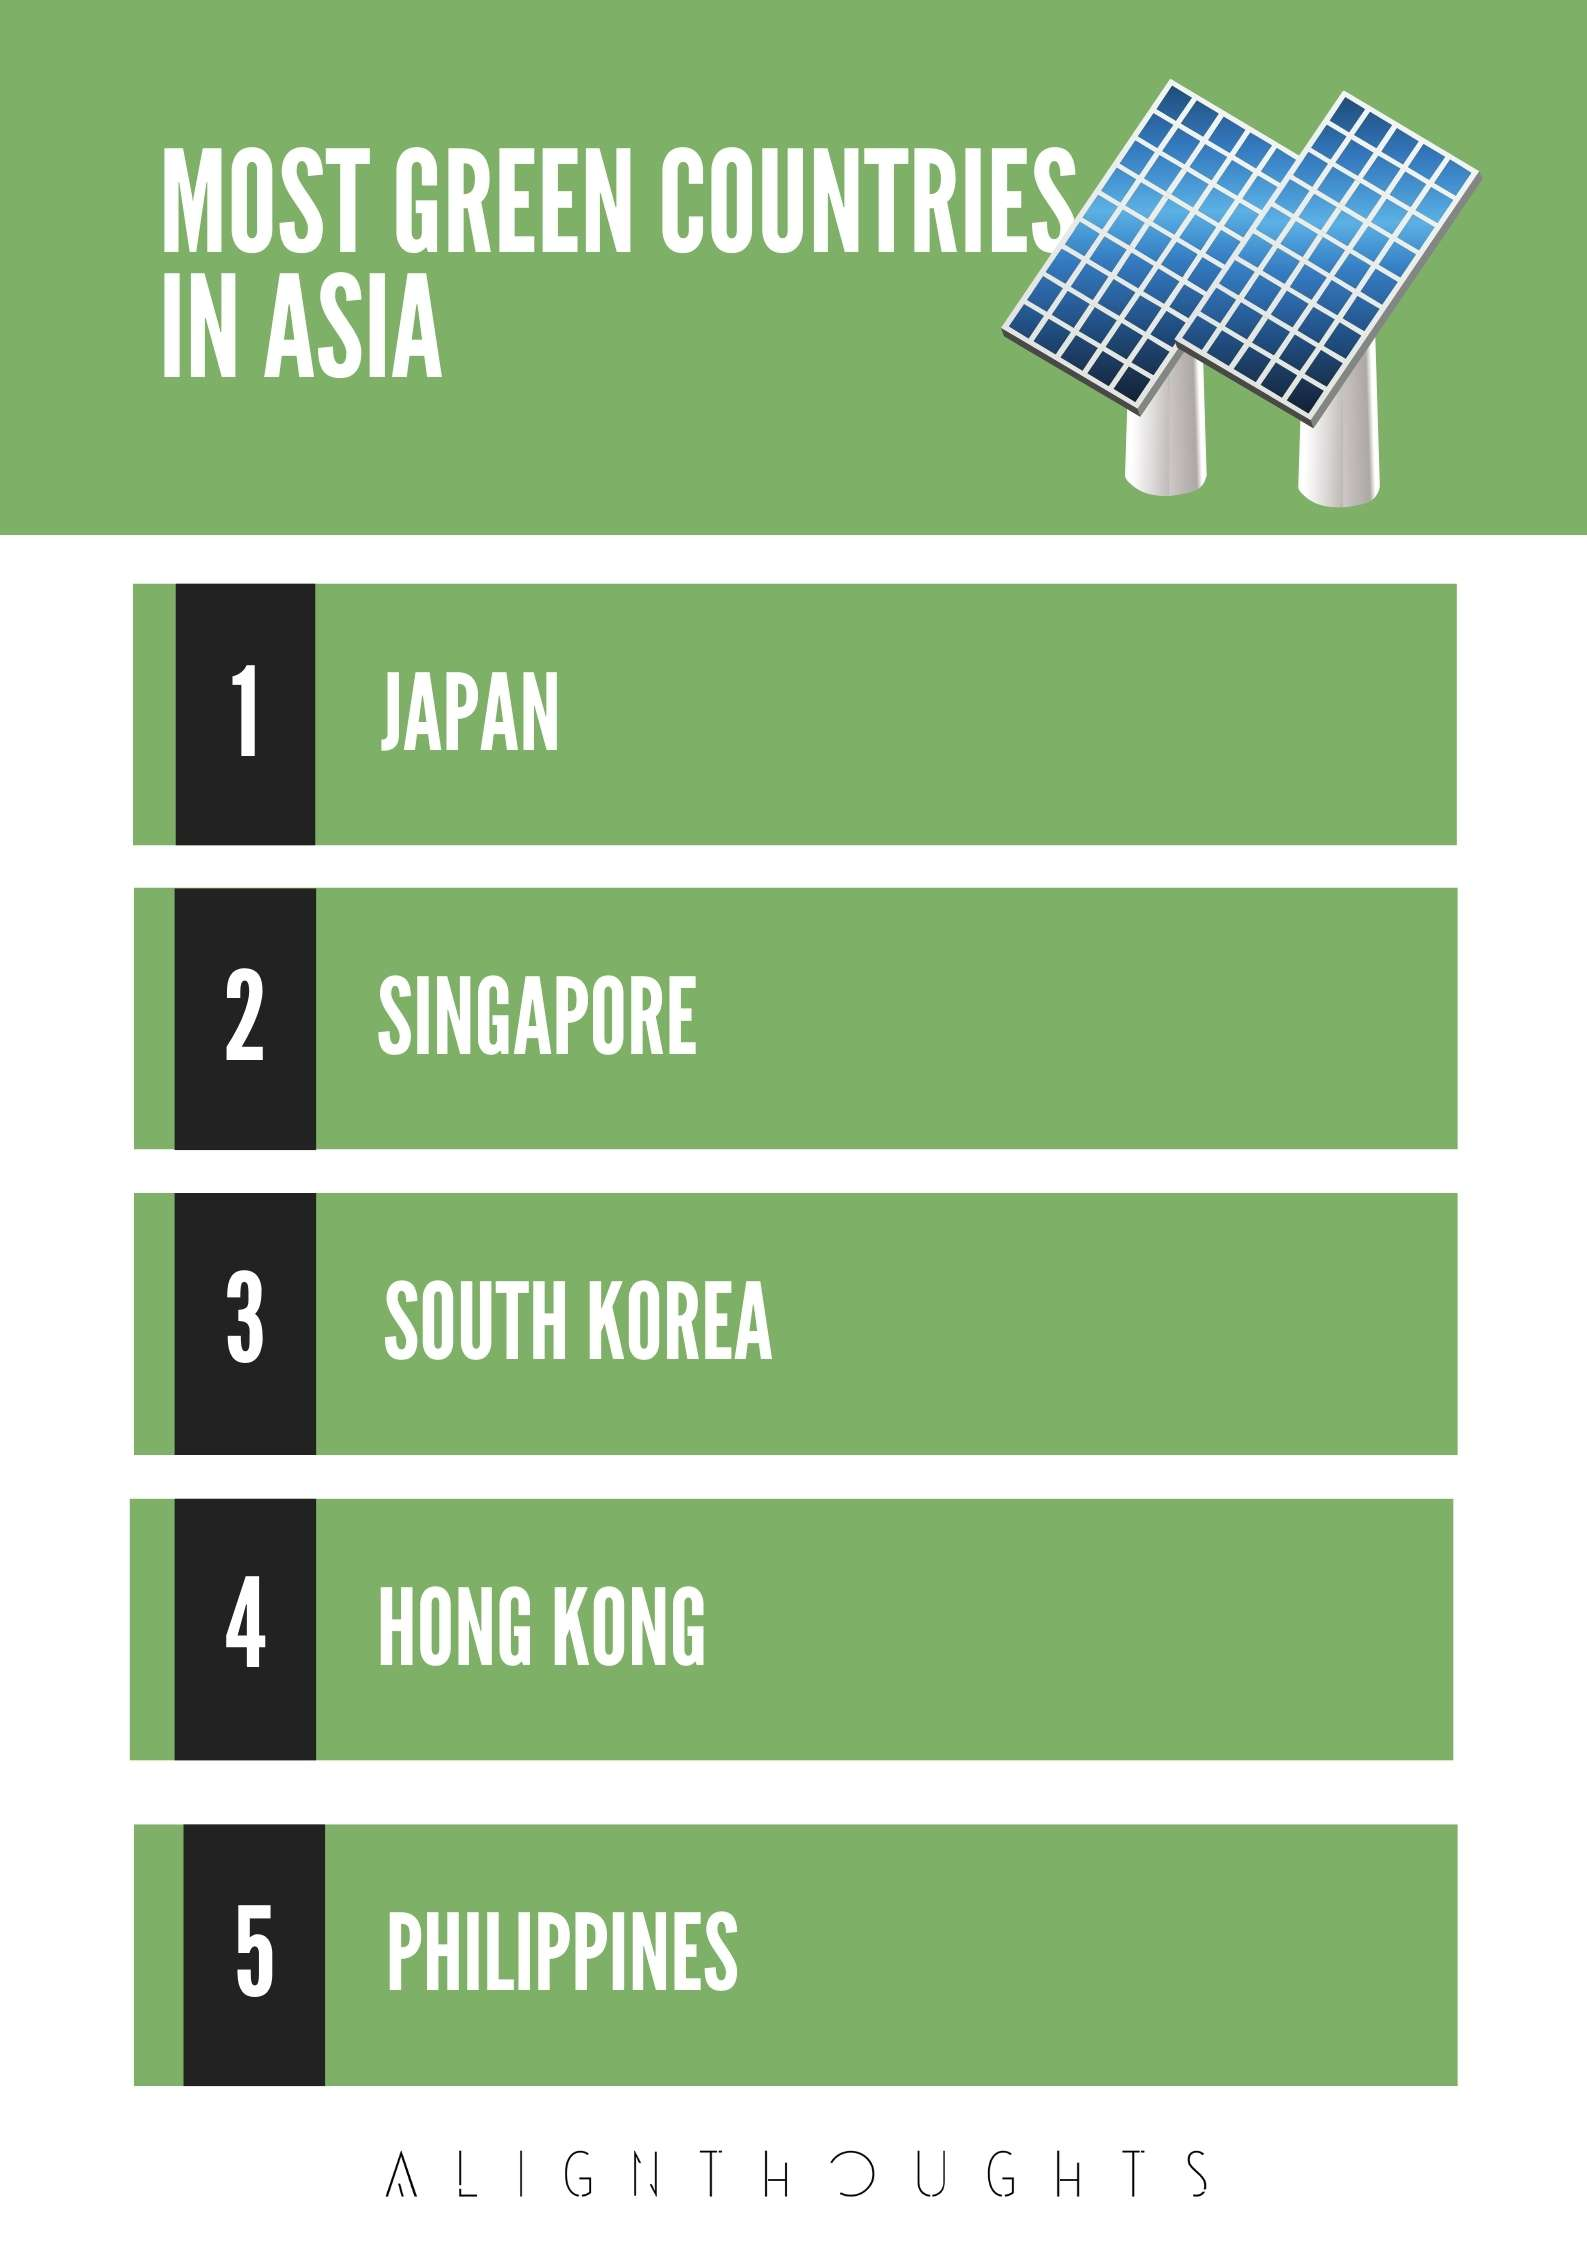 greenest countries in asia-alignthoughts